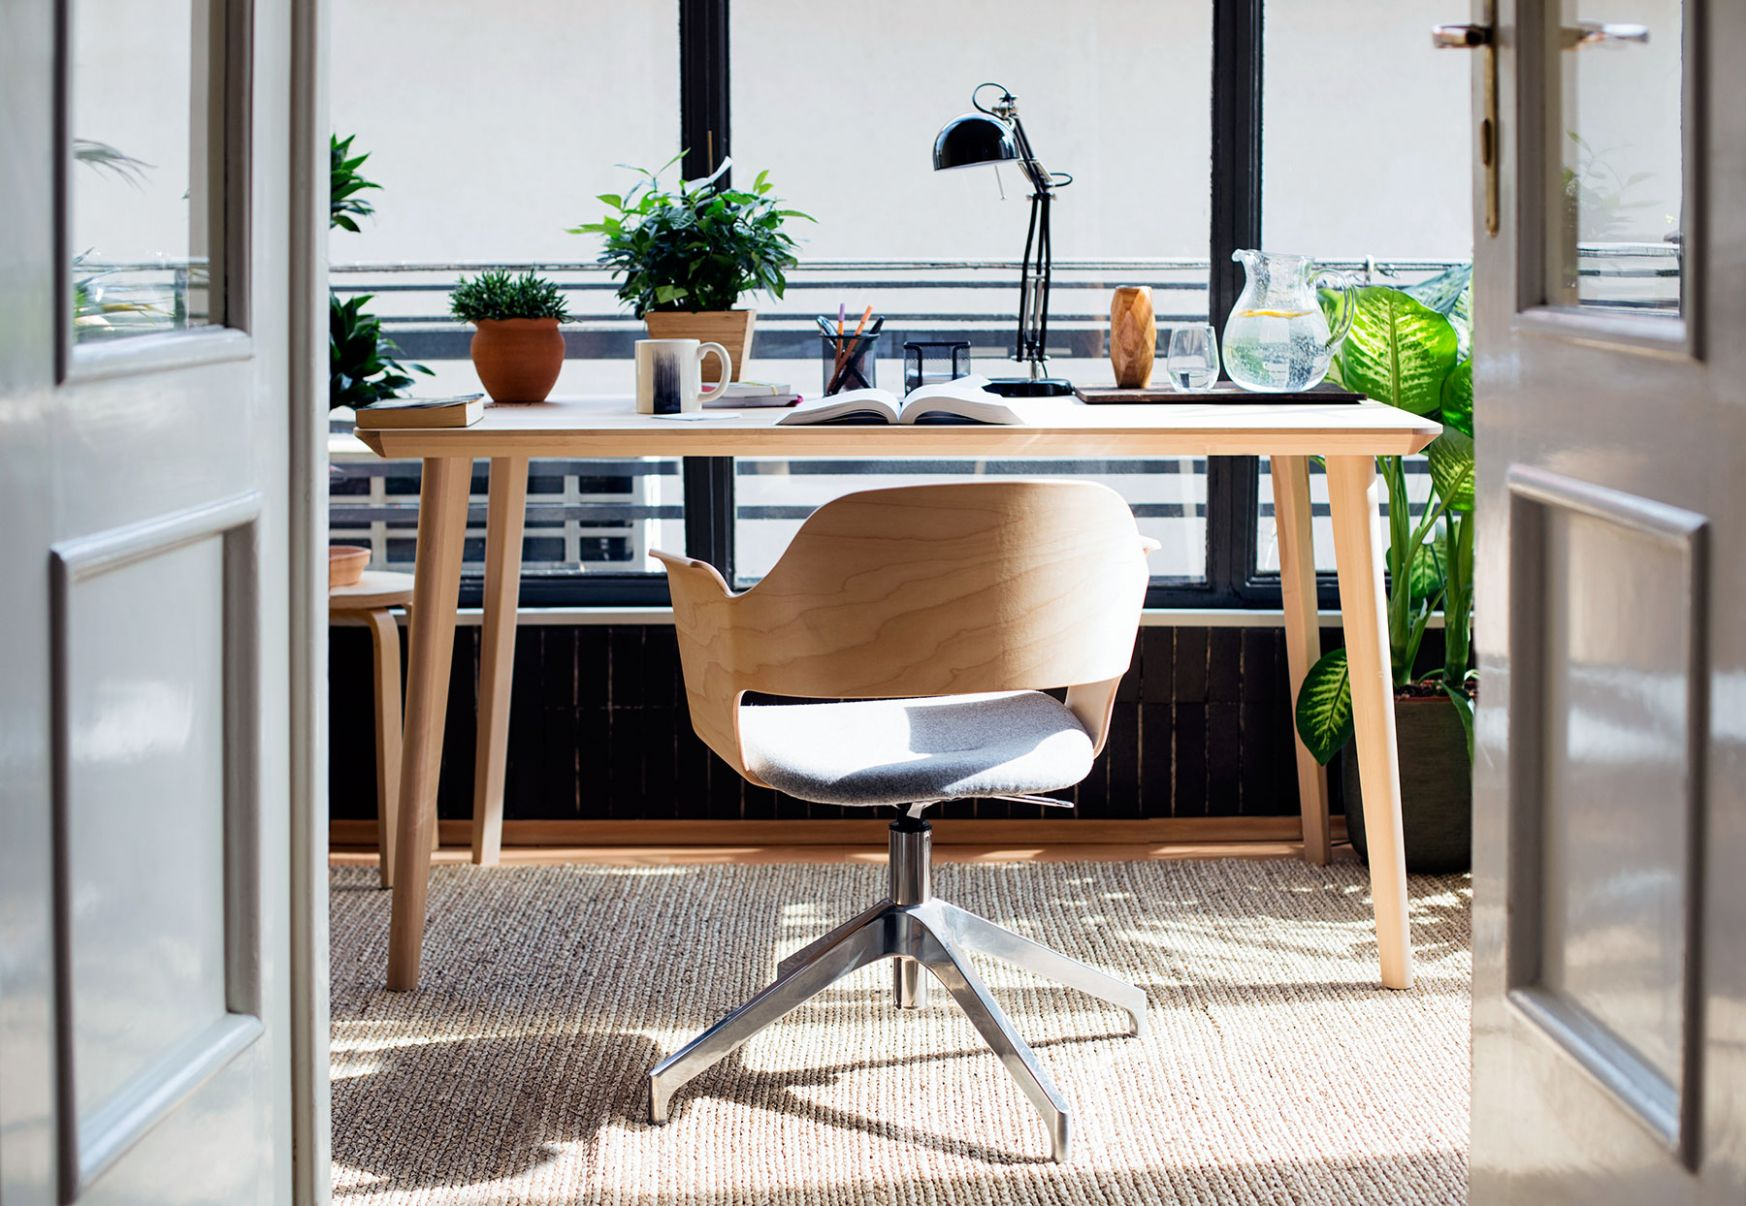 8 Home Office Ideas That Will Make You Want to Work All Day ..